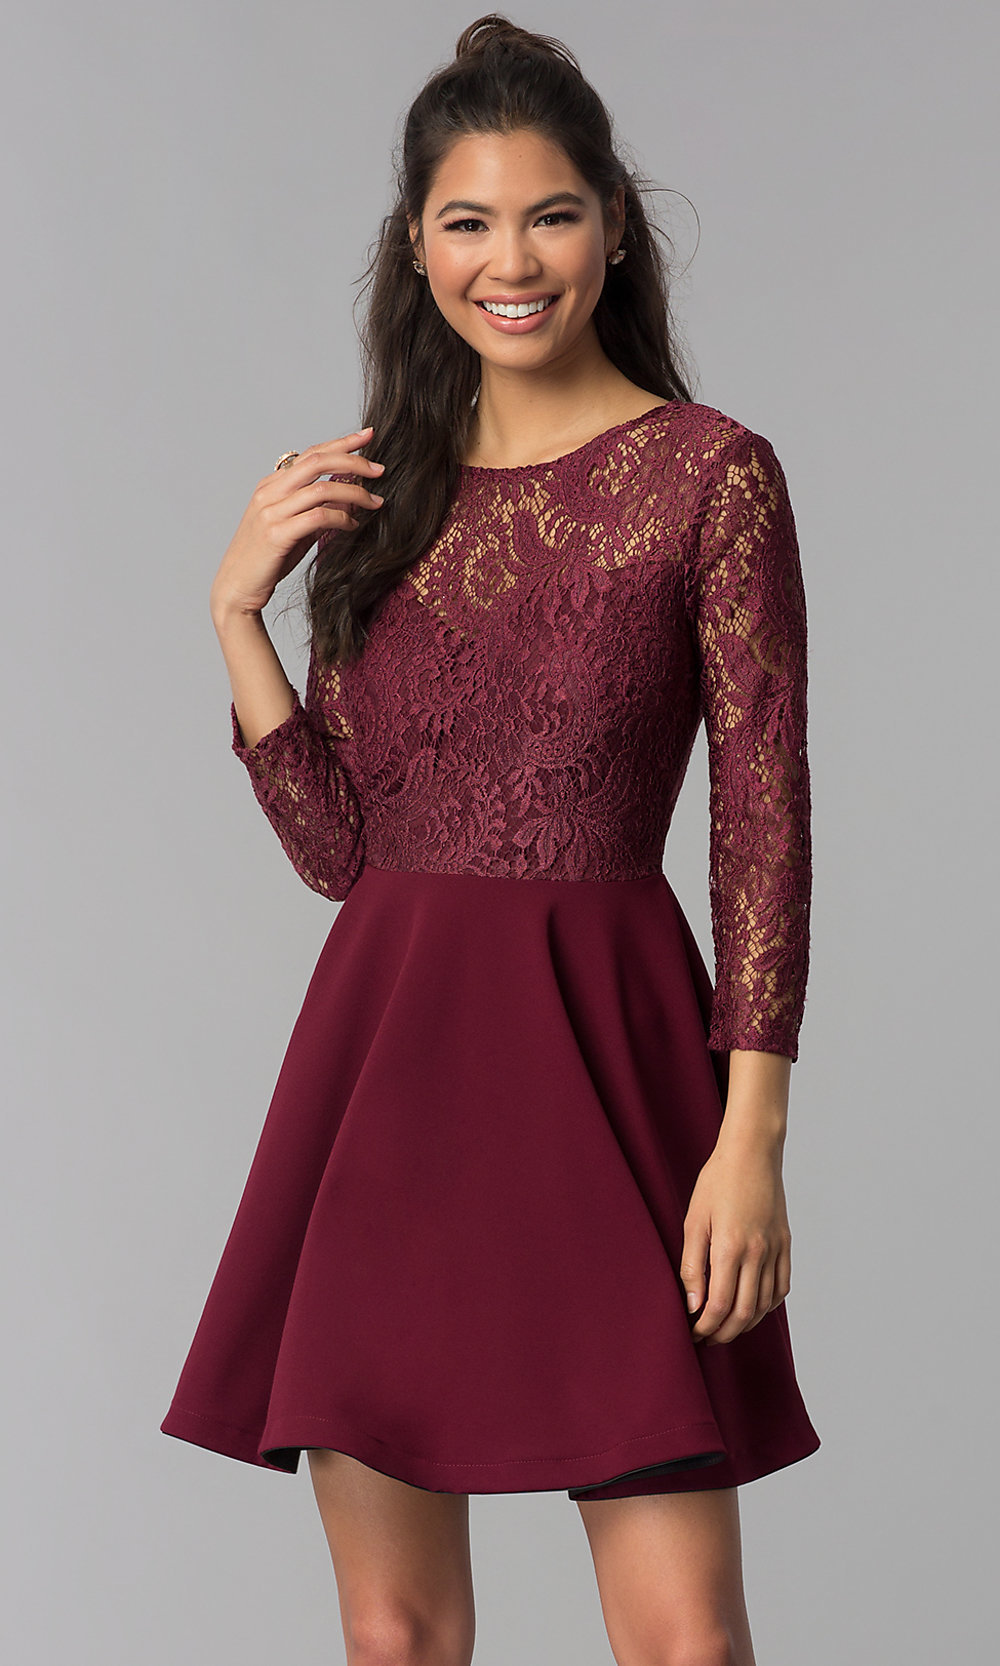 bc7ffa323f6 Image of short garnet red lace homecoming dress with sleeves. Style   BD-Q72CK170. Tap to expand